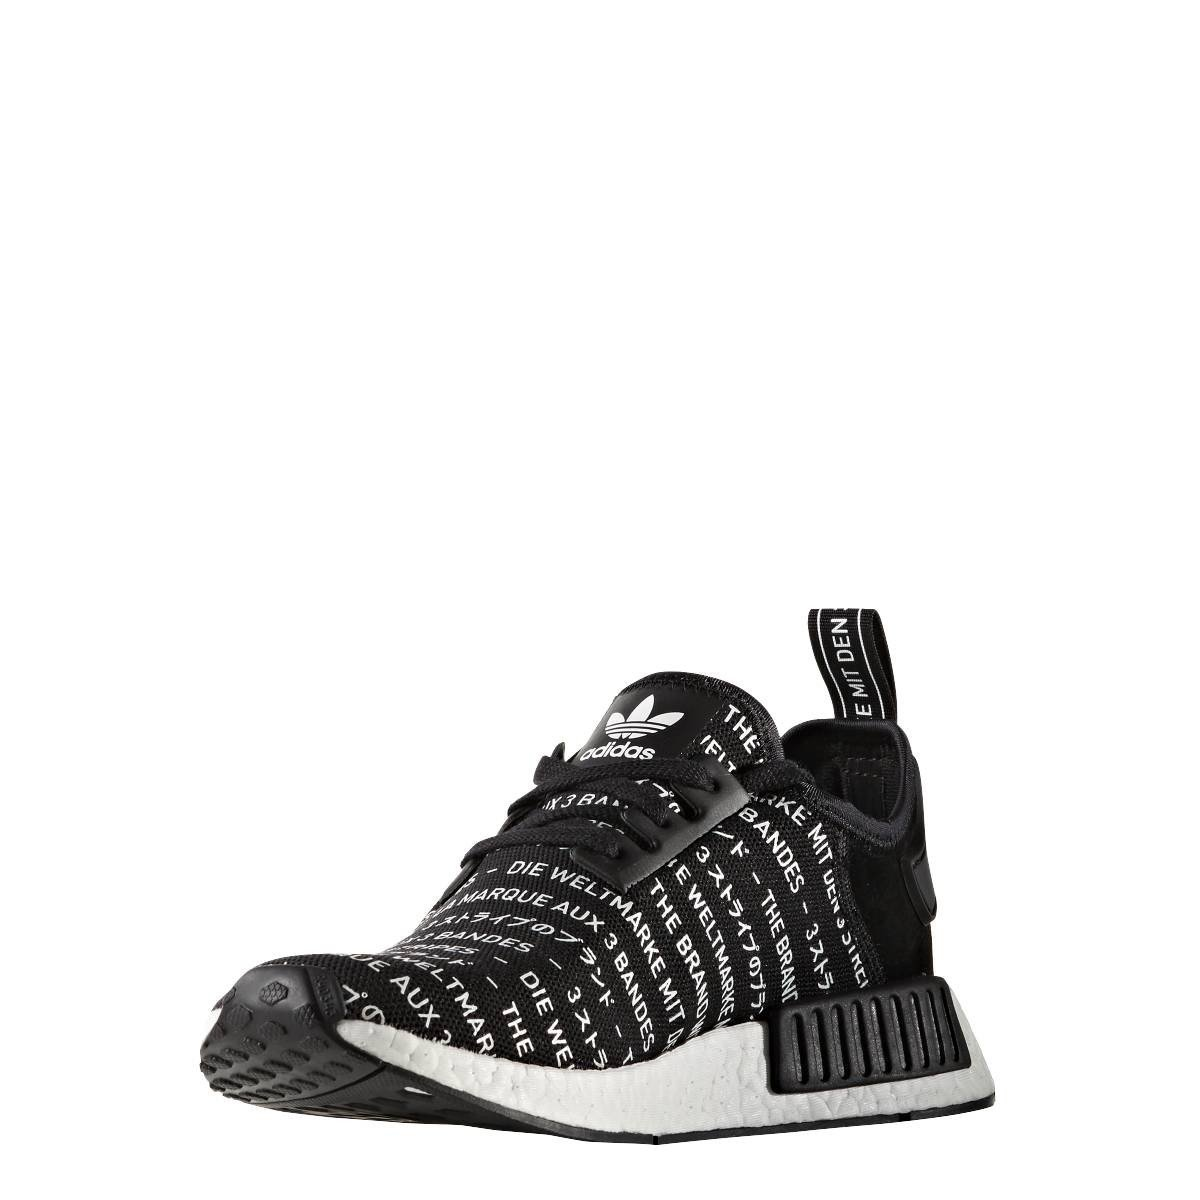 best cheap 3df72 930b3 Adidas NMD R1 'Three Stripes' - S76519: Amazon.ca: Shoes ...